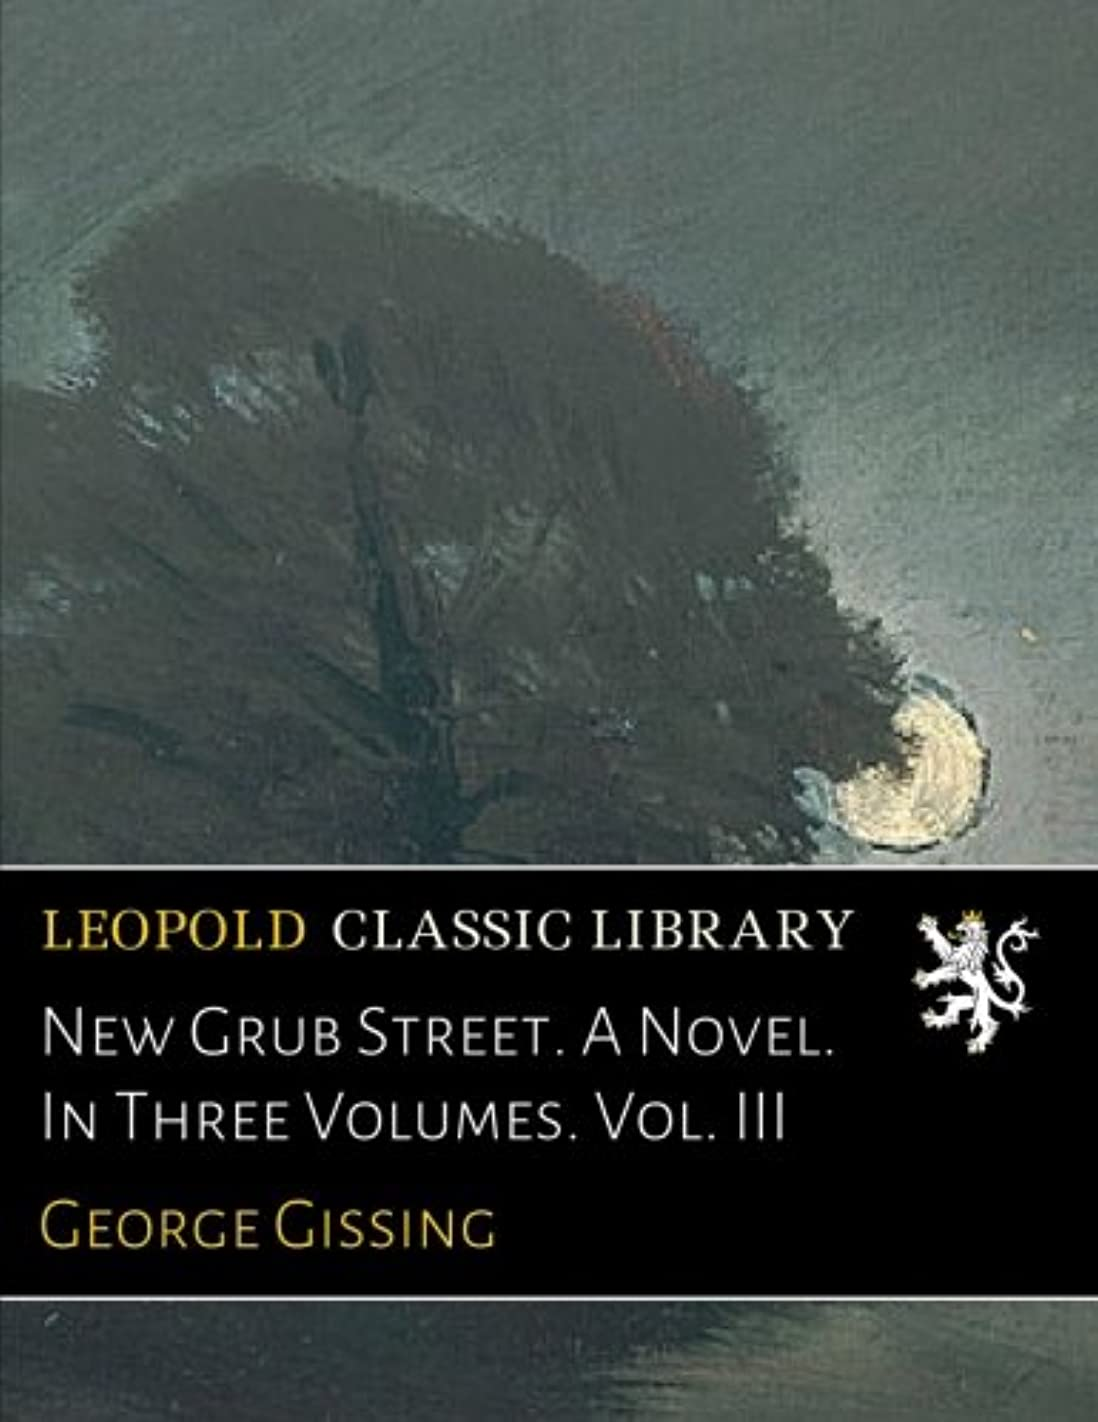 北西残忍なエールNew Grub Street. A Novel. In Three Volumes. Vol. III